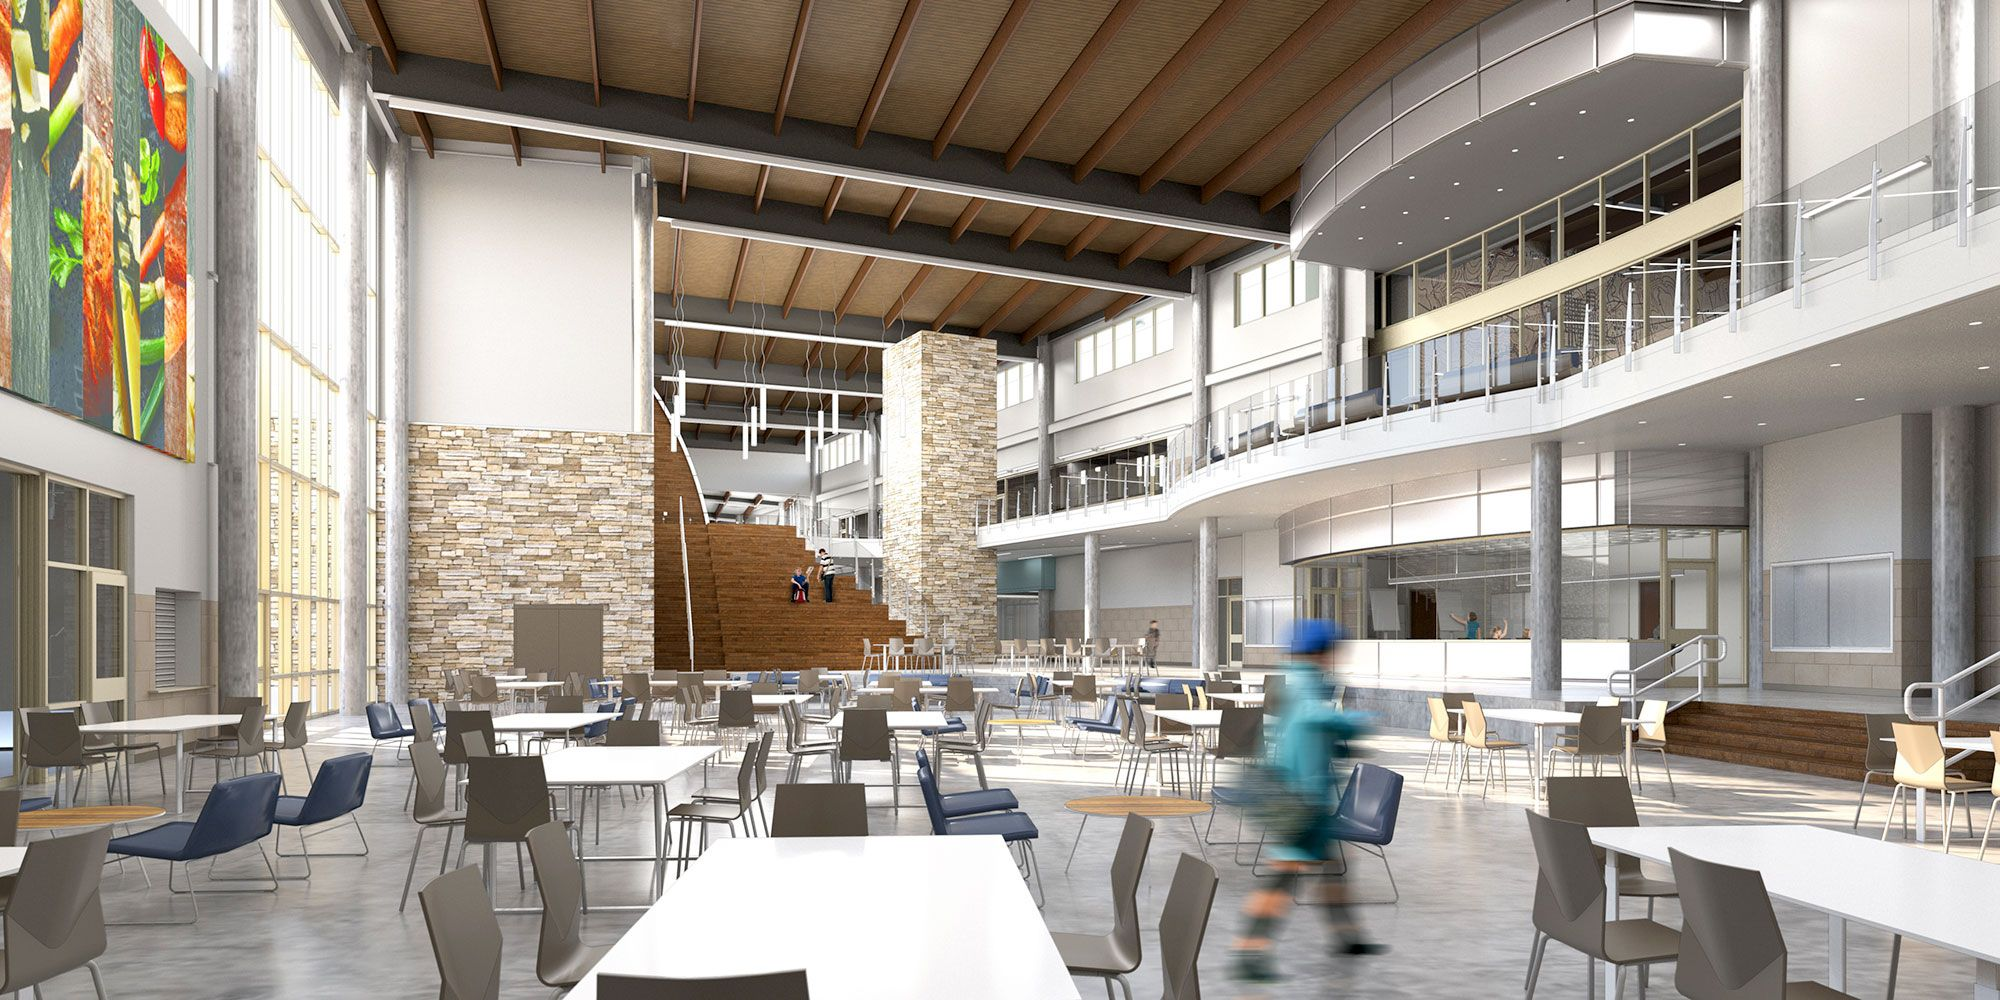 At Wagner Middle School, a public school in Georgetown, Texas, the cafeteria is the heart of the campus and features a stage for performances and a learning stair for solo and group work.